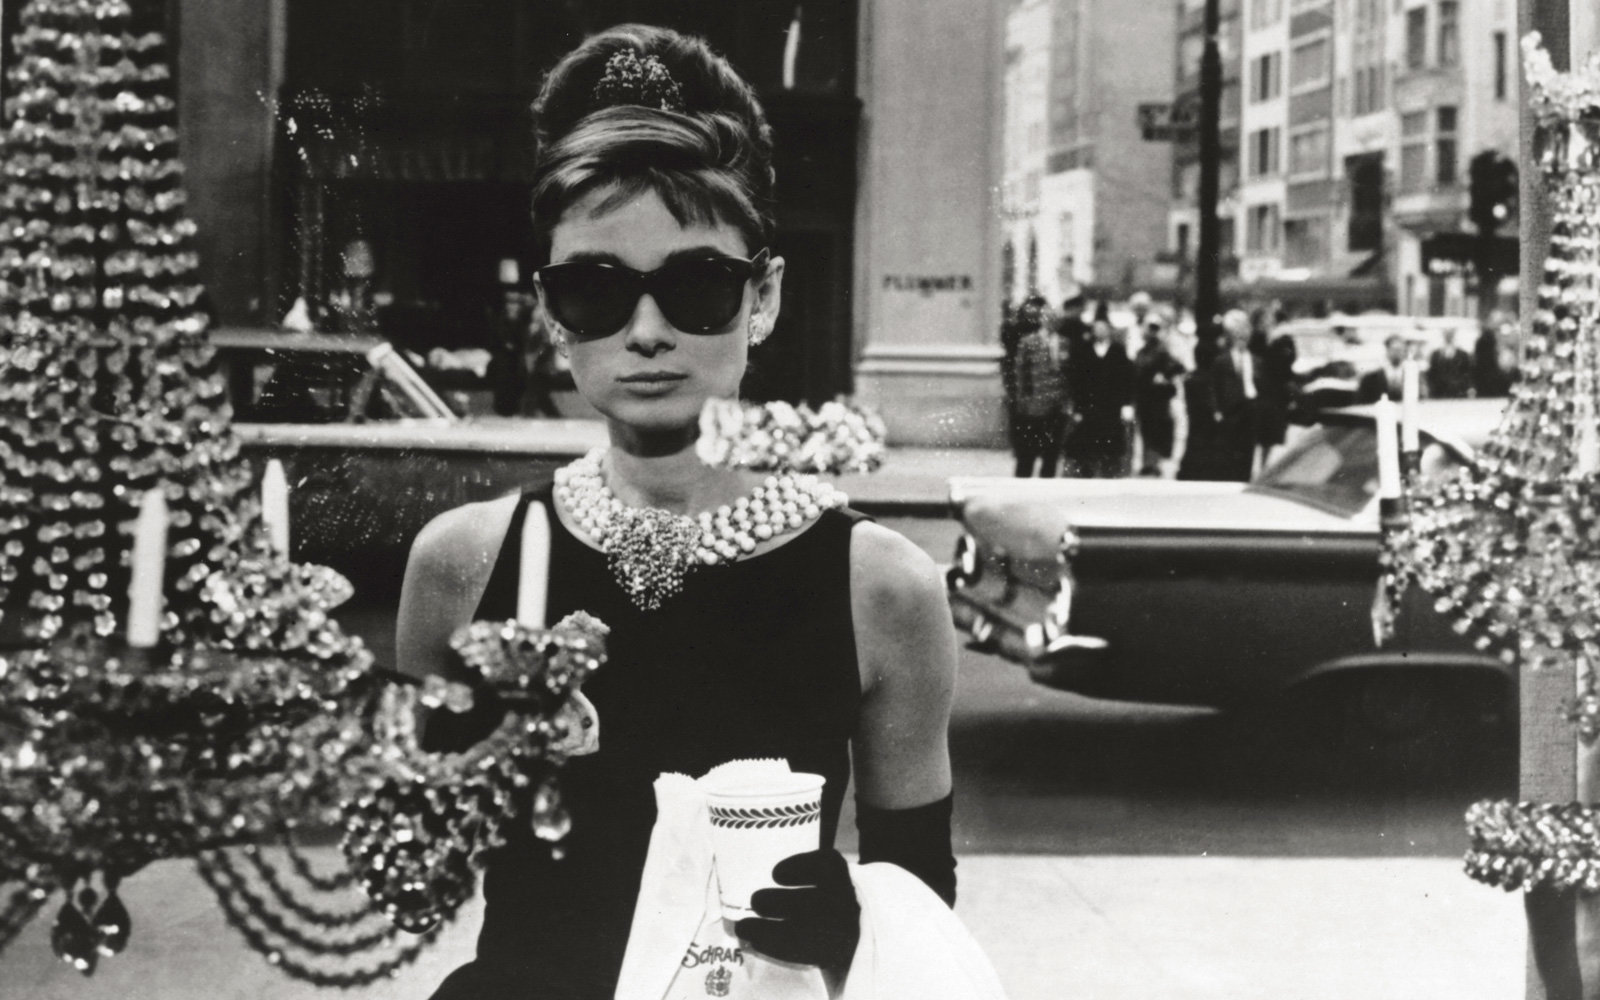 Breakfast at Tiffany's is now a thing you can actually do